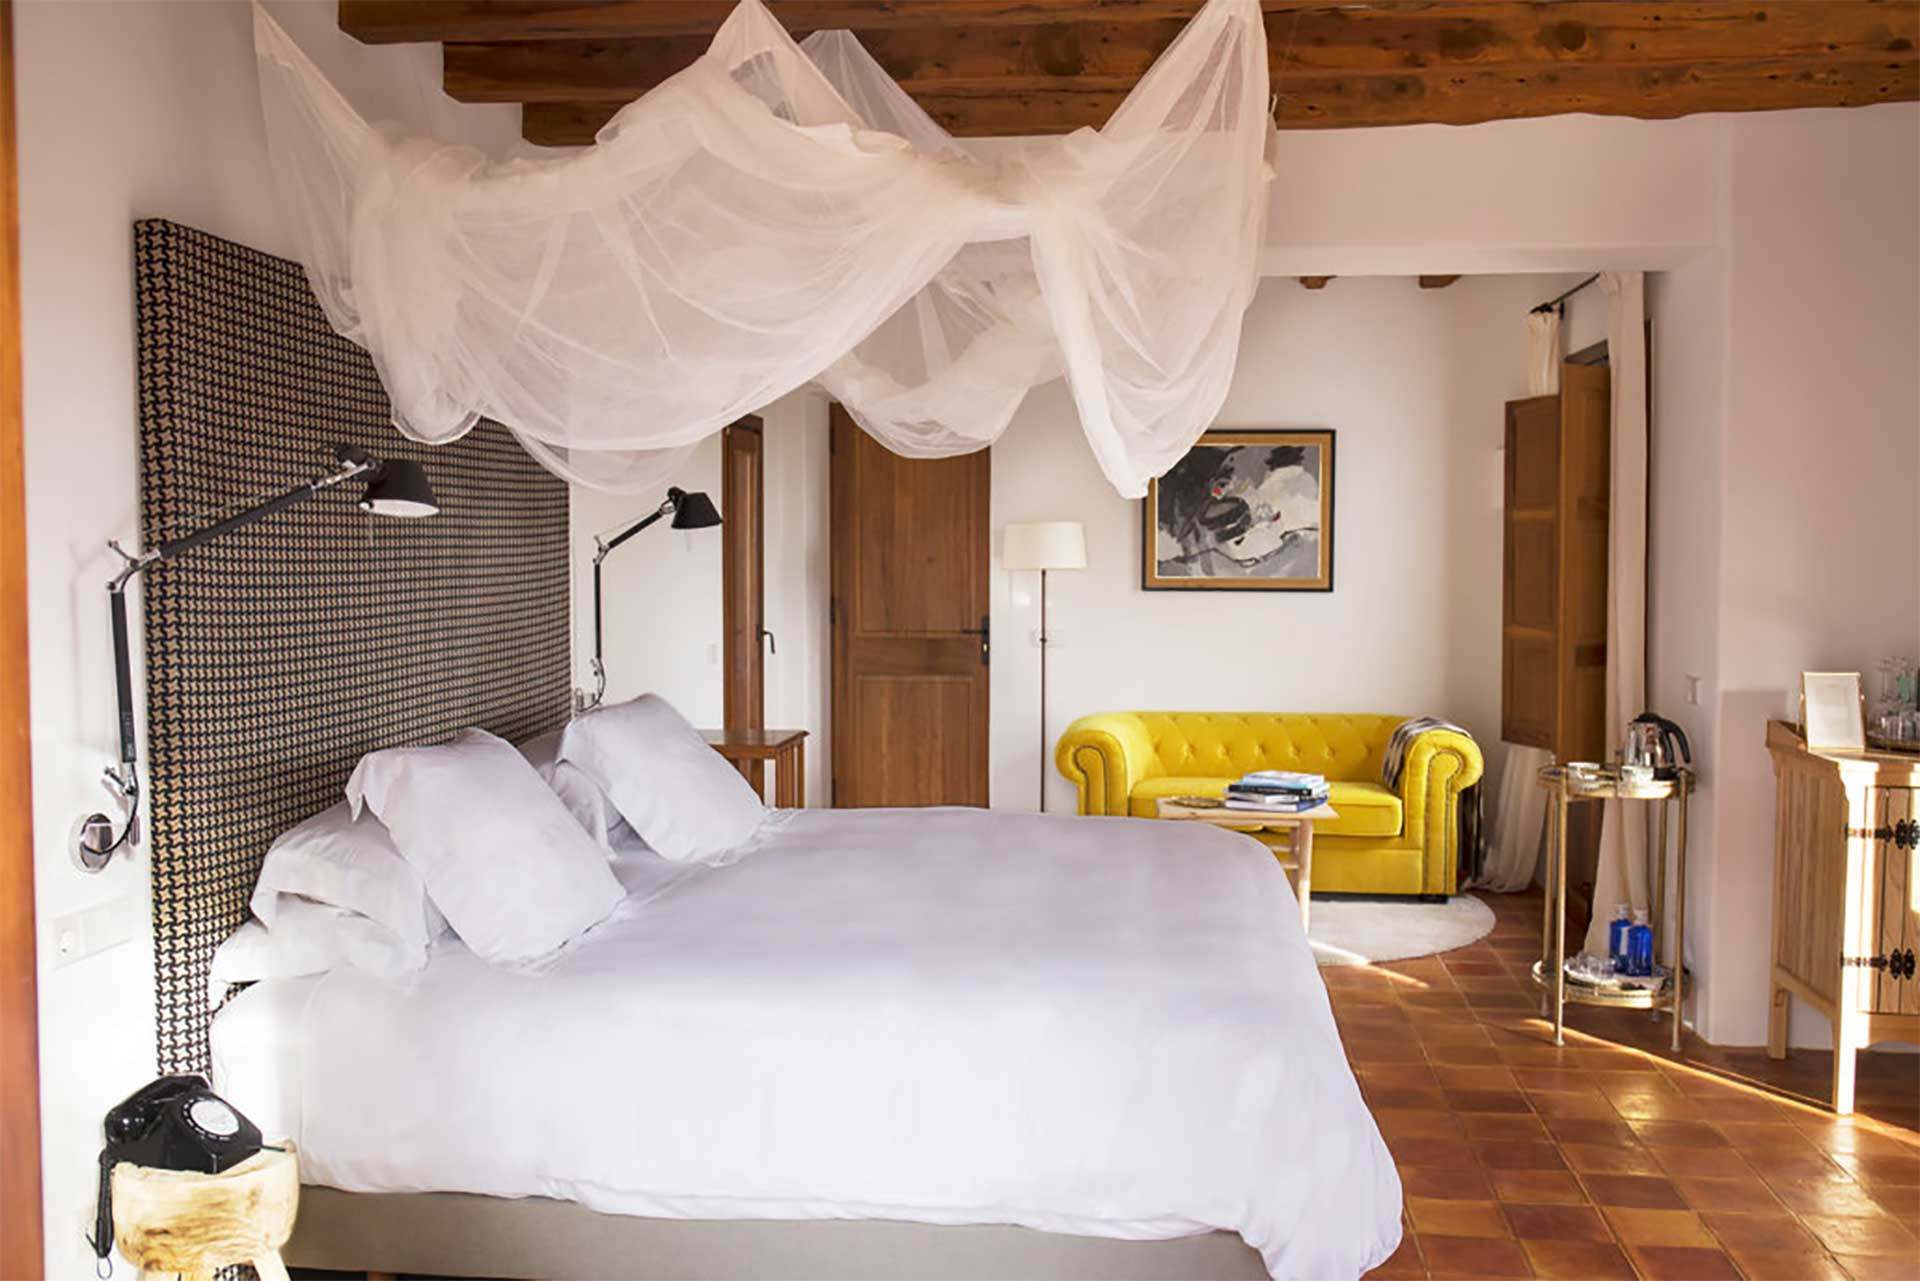 Hotel Cas Gasí in Ibiza, among the 6 best luxury hotels in Spain to elevate your trip